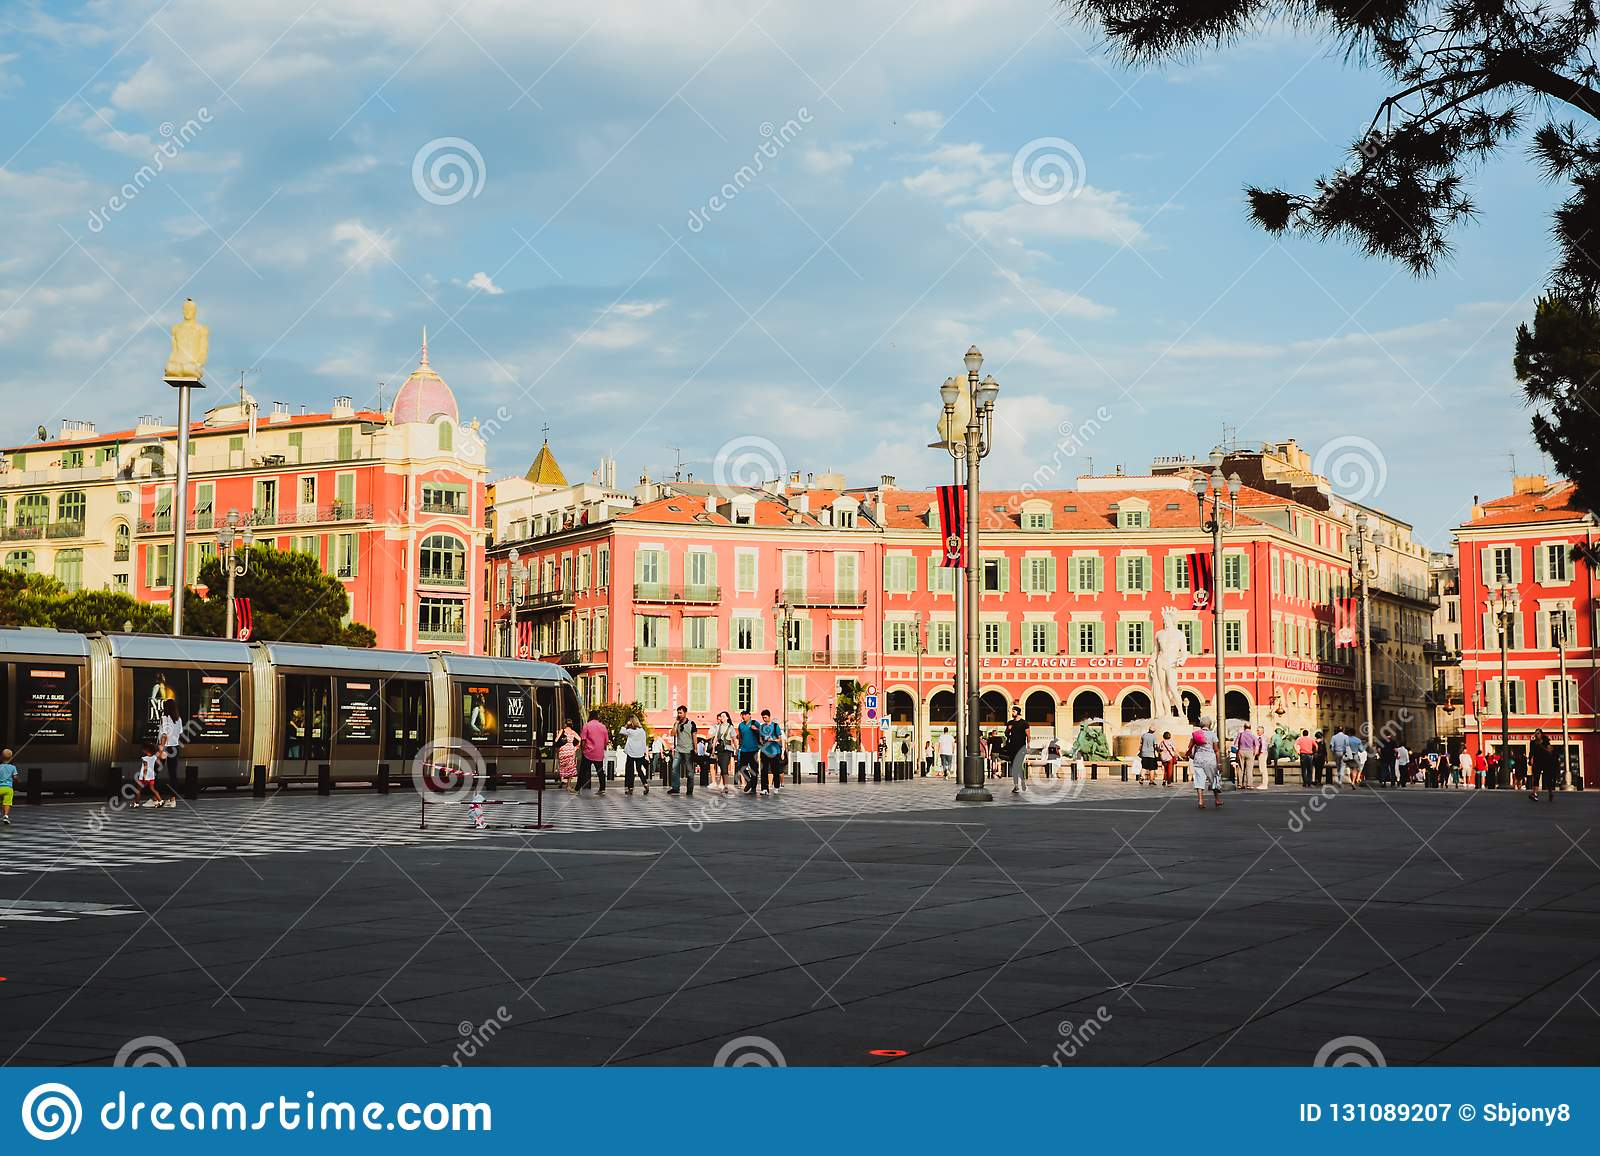 NICE, FRANCE - JUNE 26, 2017: Central Square - Place Massena, landmark of the town of Nice. A pedestrian-only square, is surrounde